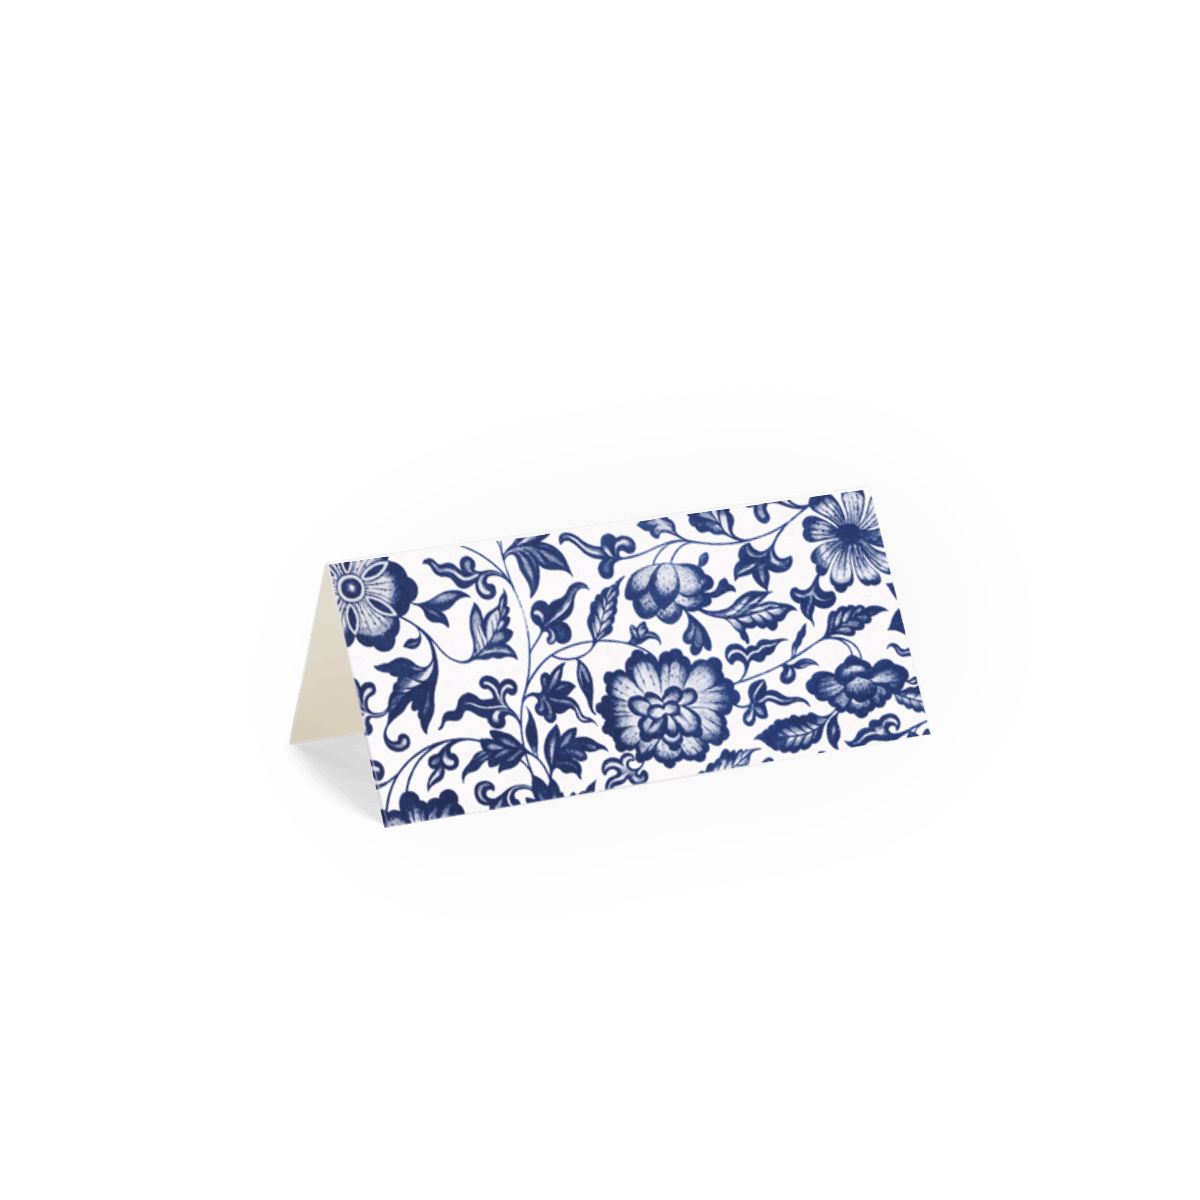 Https%3a%2f%2fwww.papier.com%2fproduct image%2f82580%2f15%2fblue floral porcelain 19994 arriere 1562158927.png?ixlib=rb 1.1